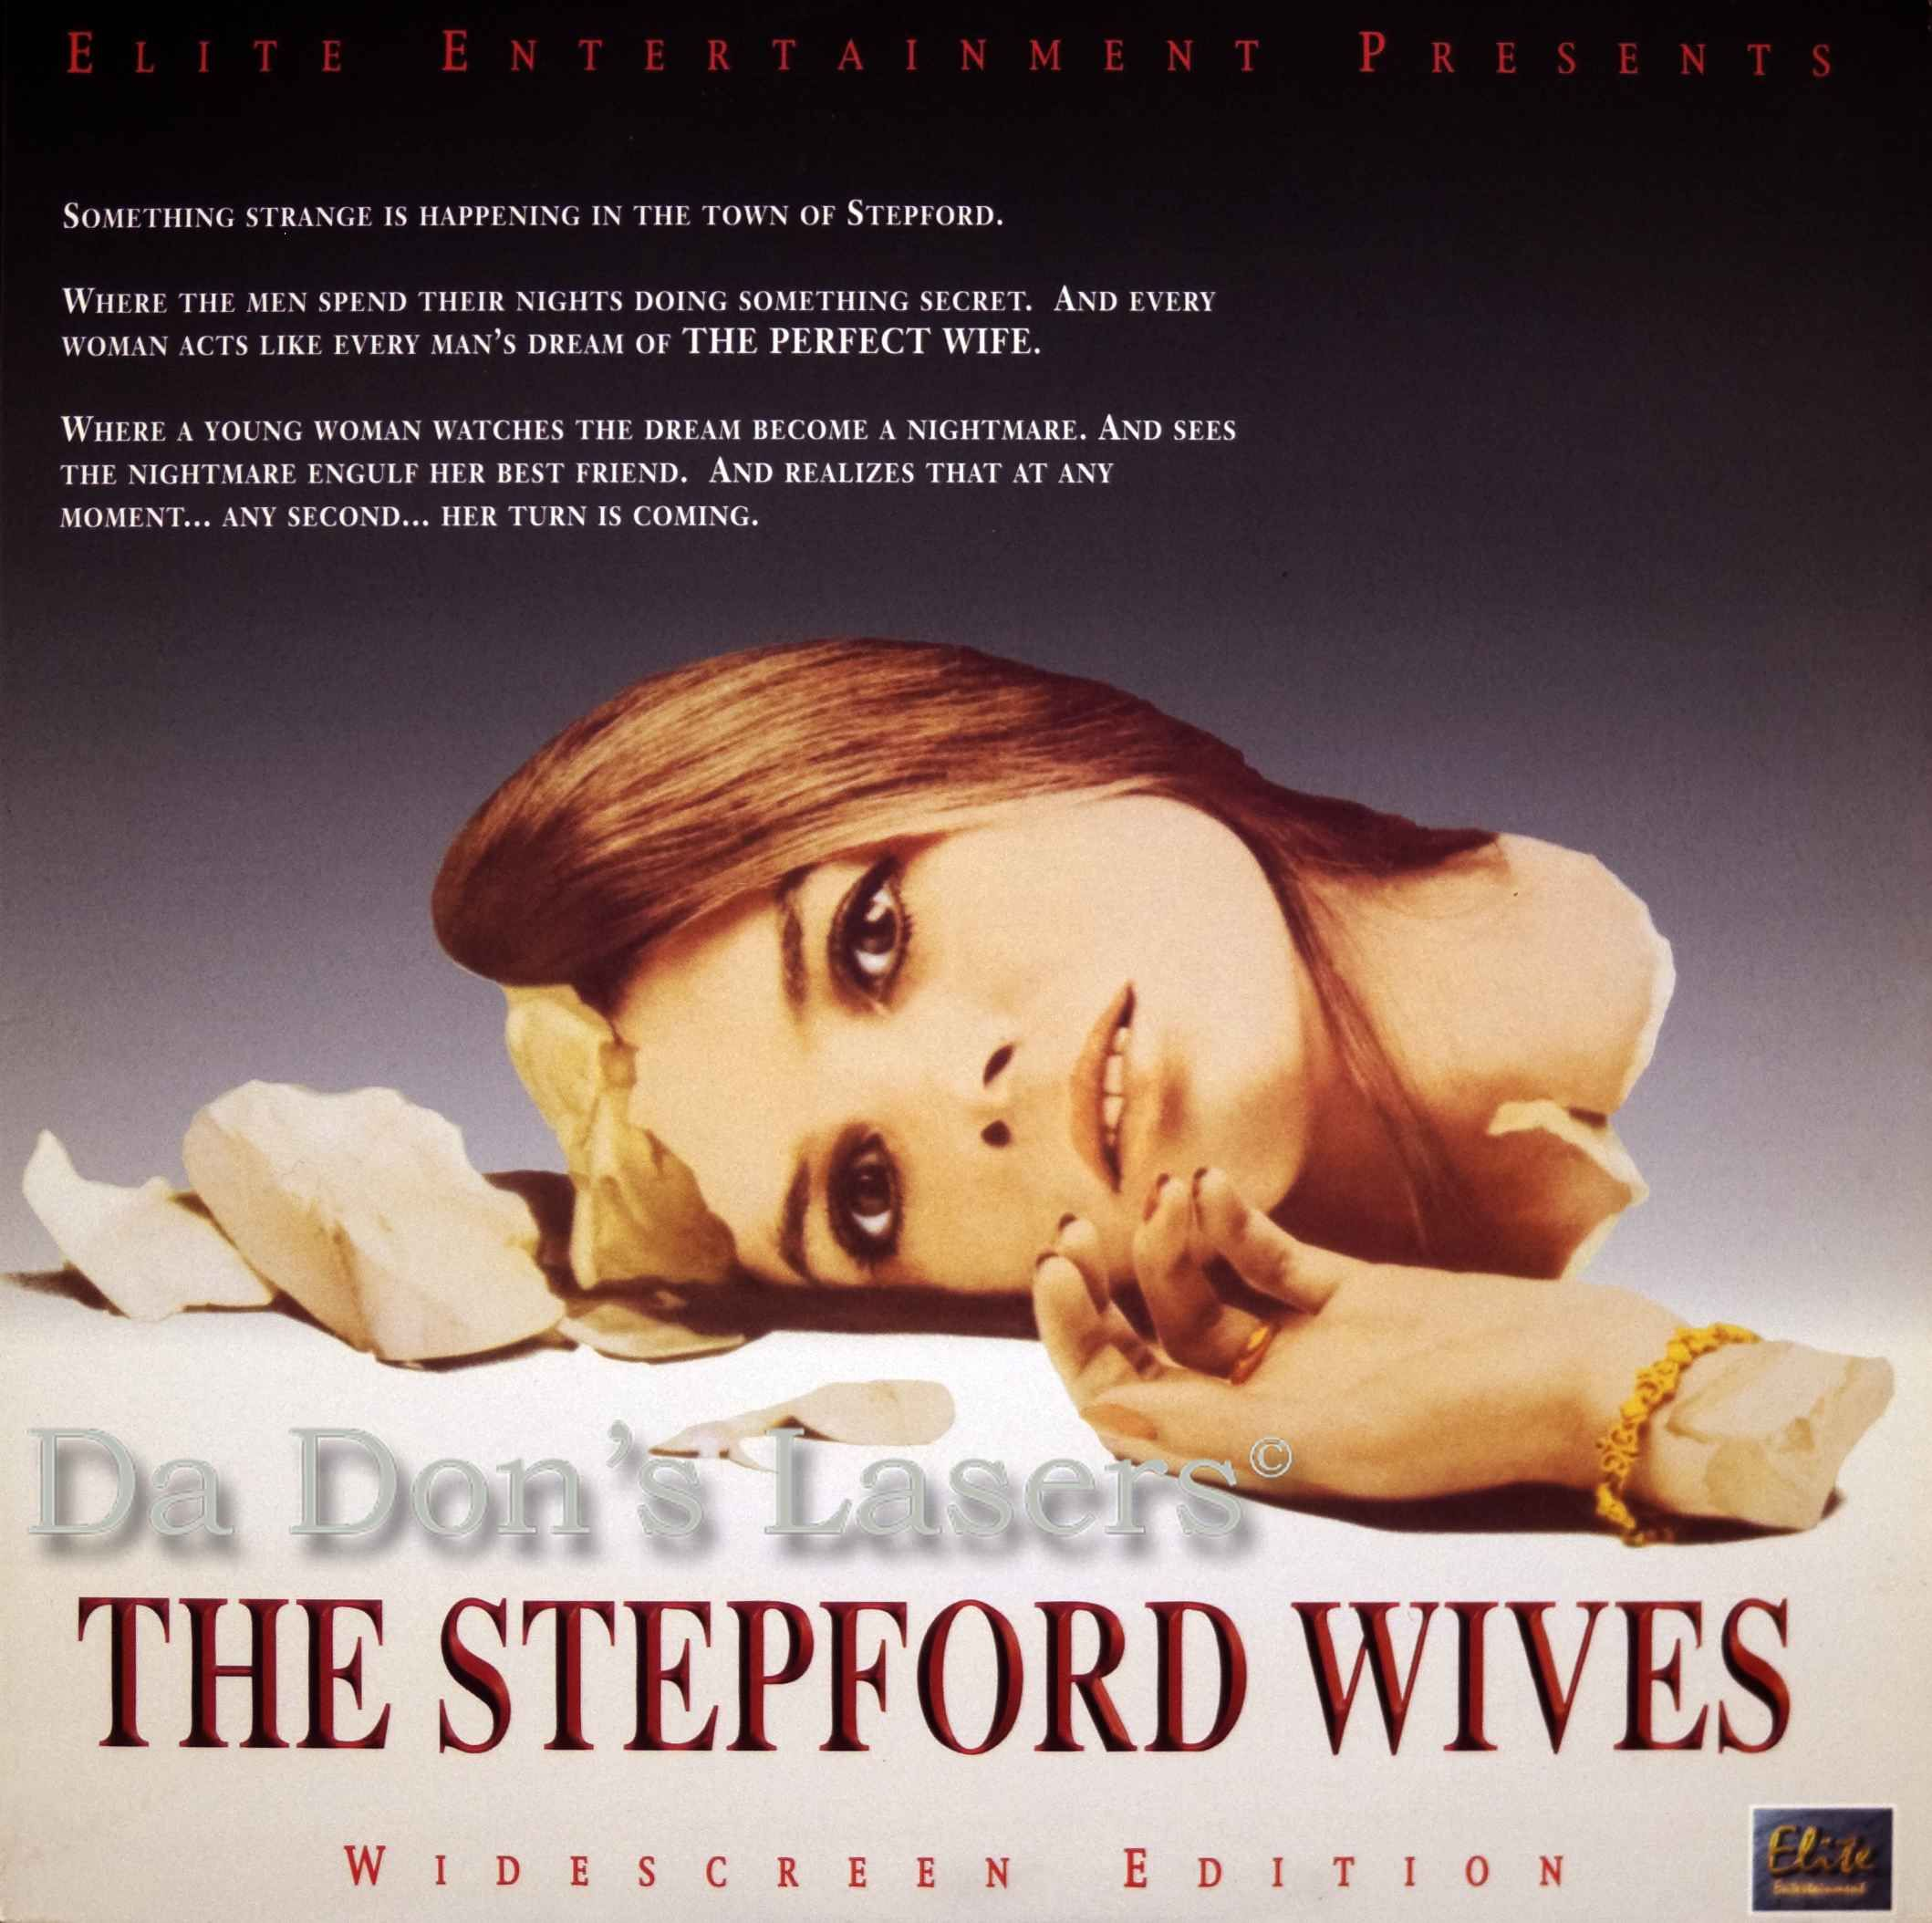 the stepford wives film analysis A page for describing main: stepford wives note: this page was cut for reason: main redirect to work 1 ghost wick [malady] creating red links in 1.